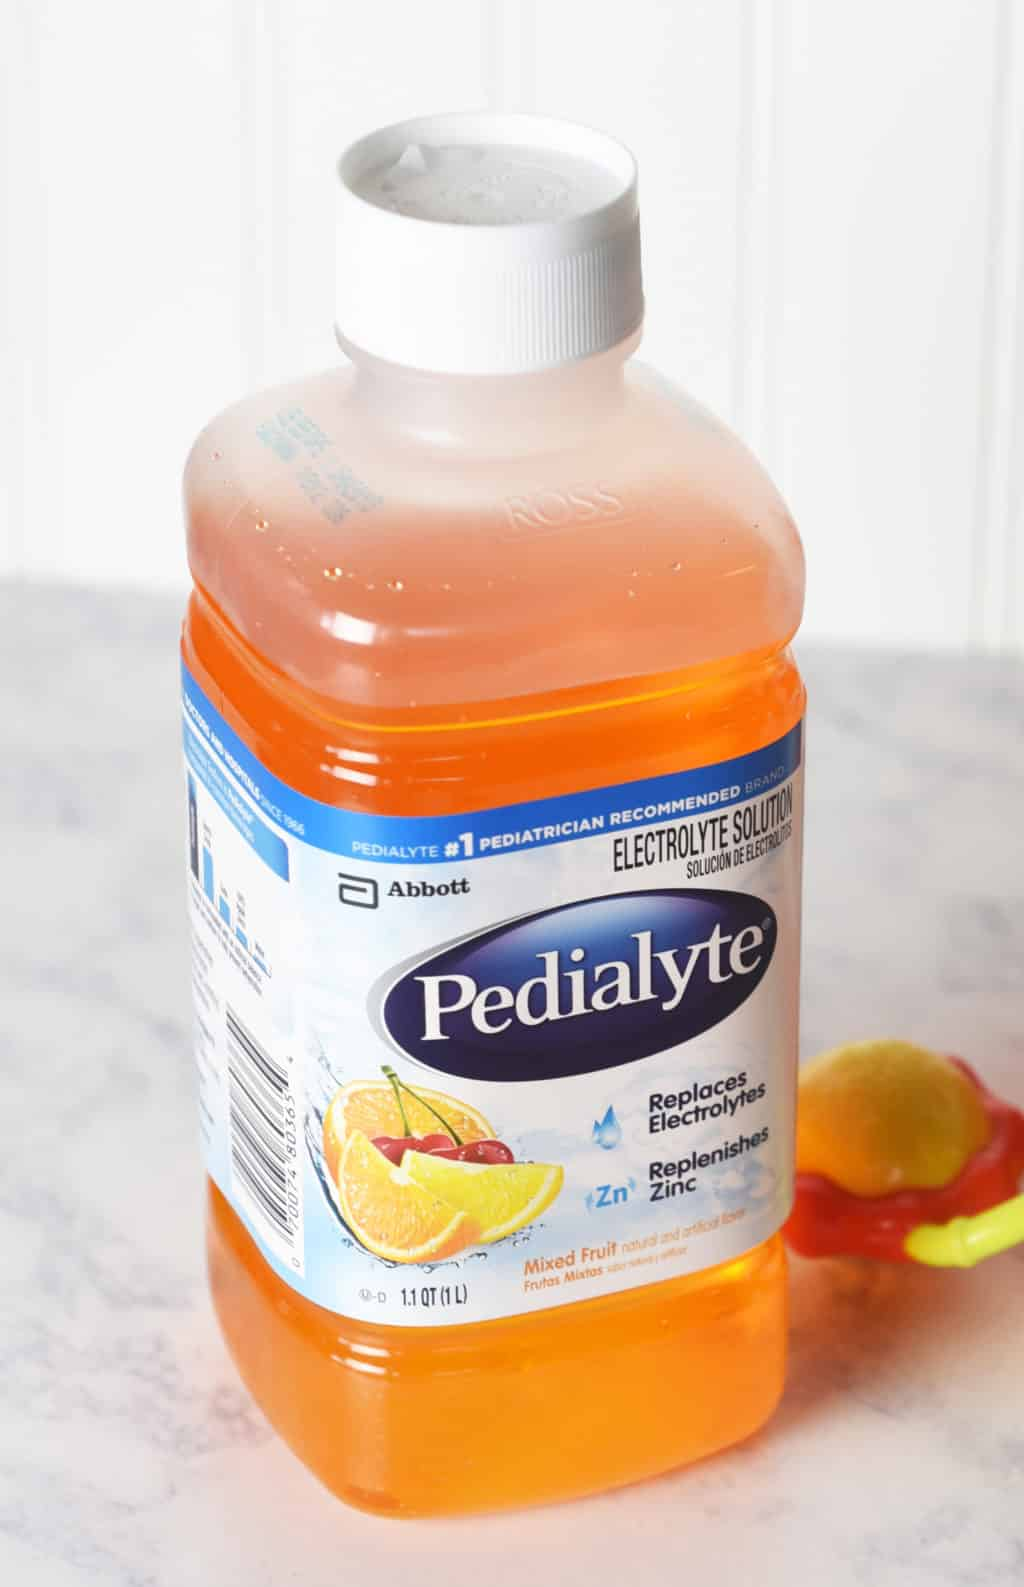 Tips for Surviving the Stomach Flu with Pedialyte